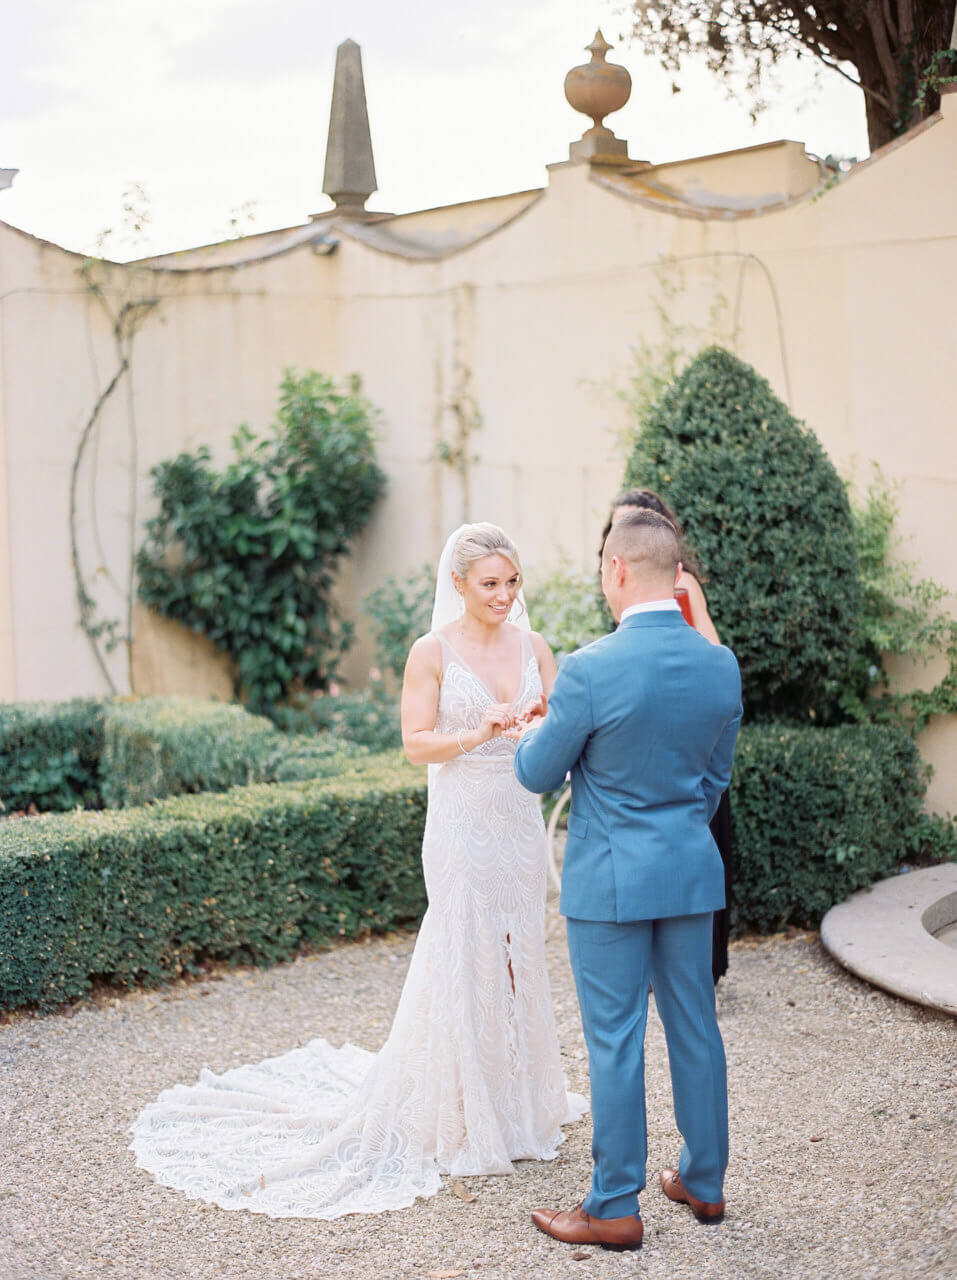 Wedding vows in Tuscany - Villa agape